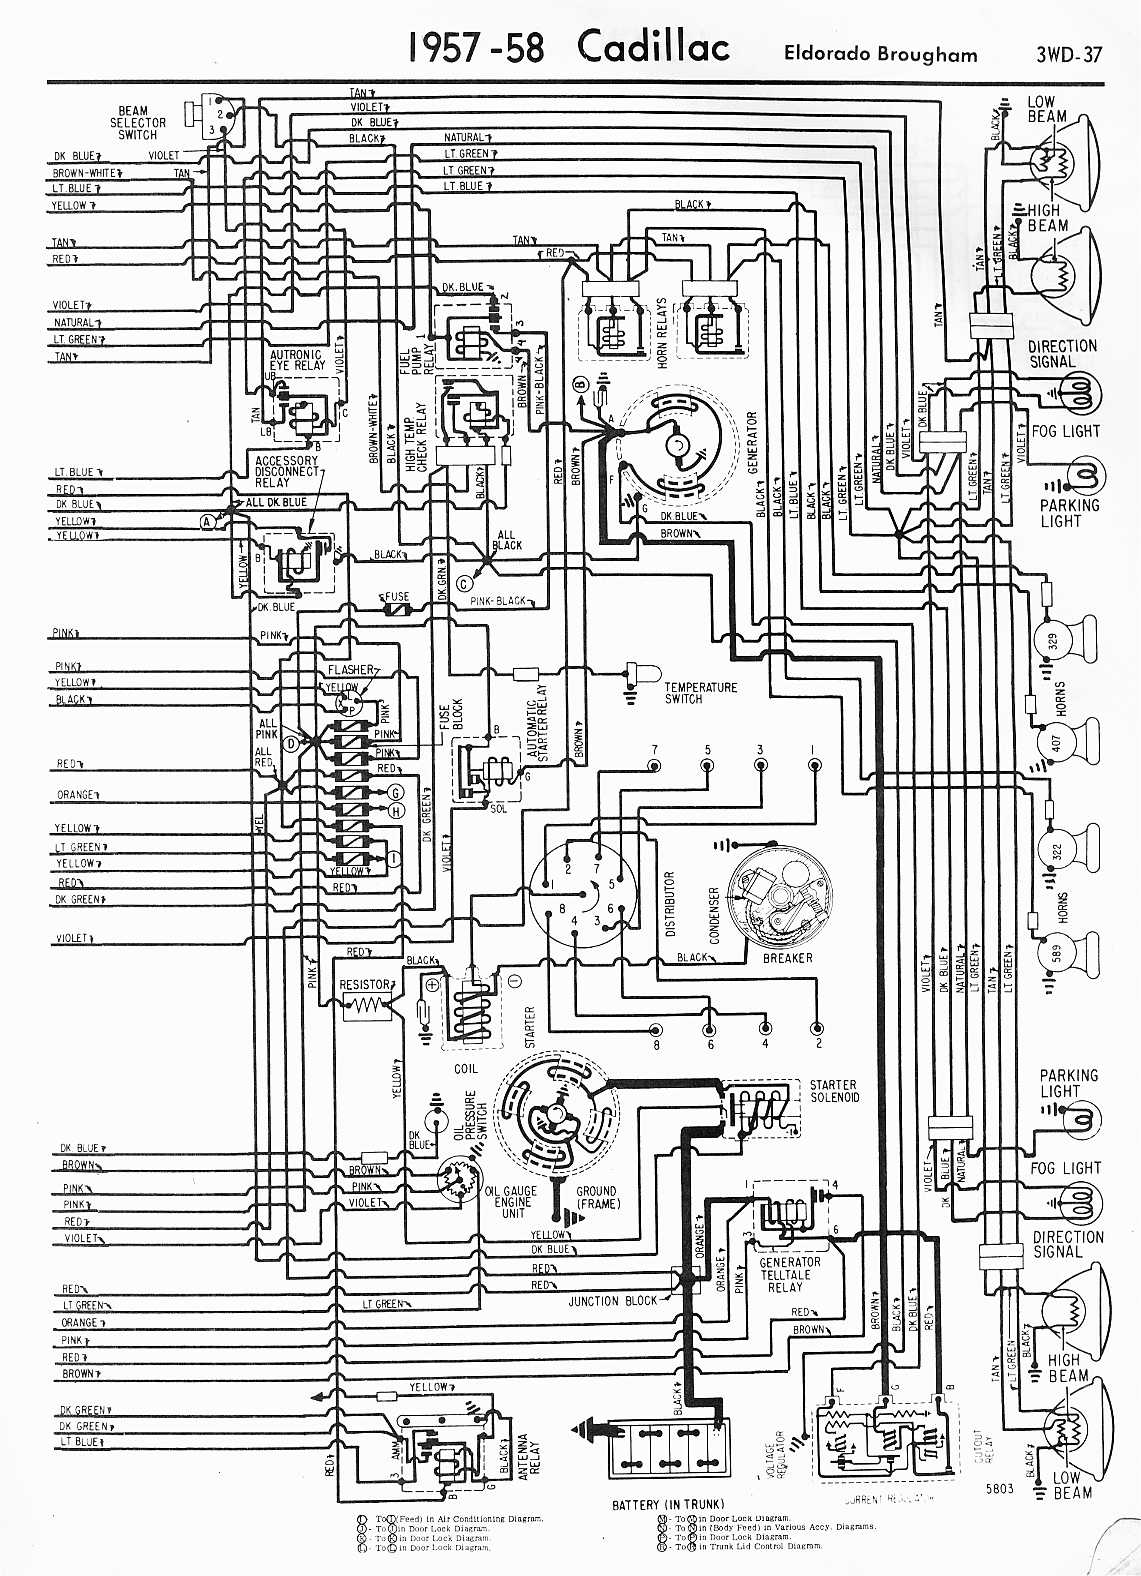 1961 Cadillac Radio Wiring Diagram Libraries 1962 Ford Diagrams 1957 19651957 58 Eldorado Brougham Right